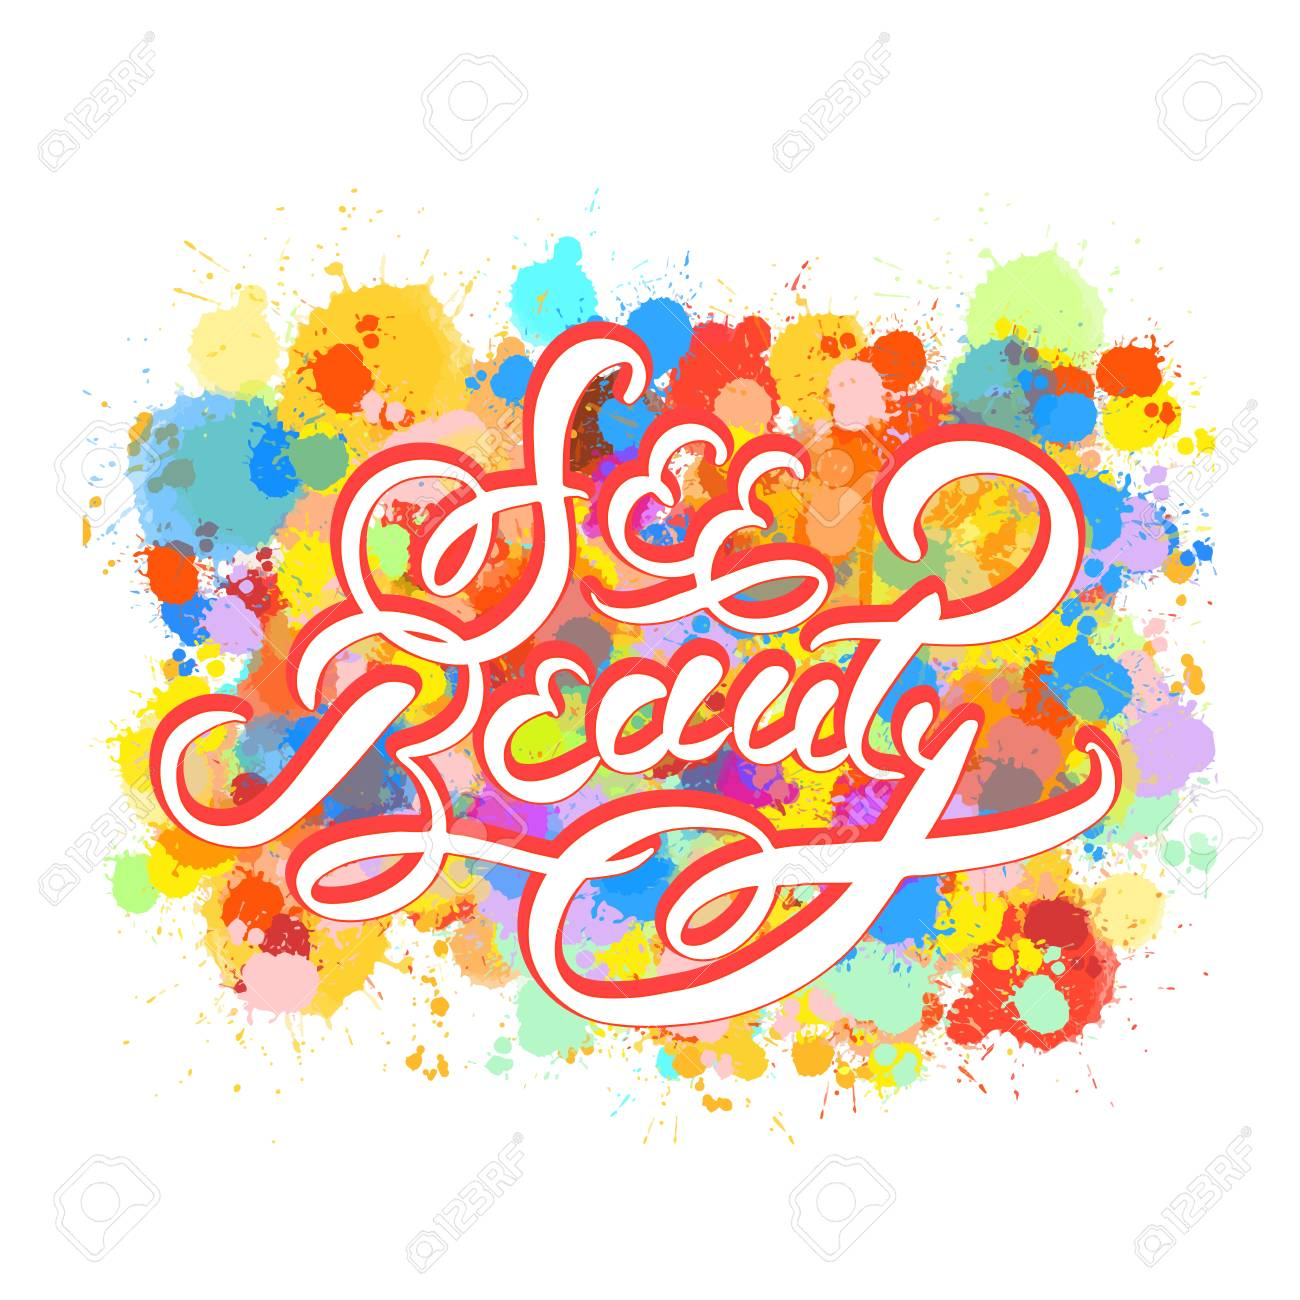 See Beauty Word Hand Lettering Vector Artwork Concept Ready